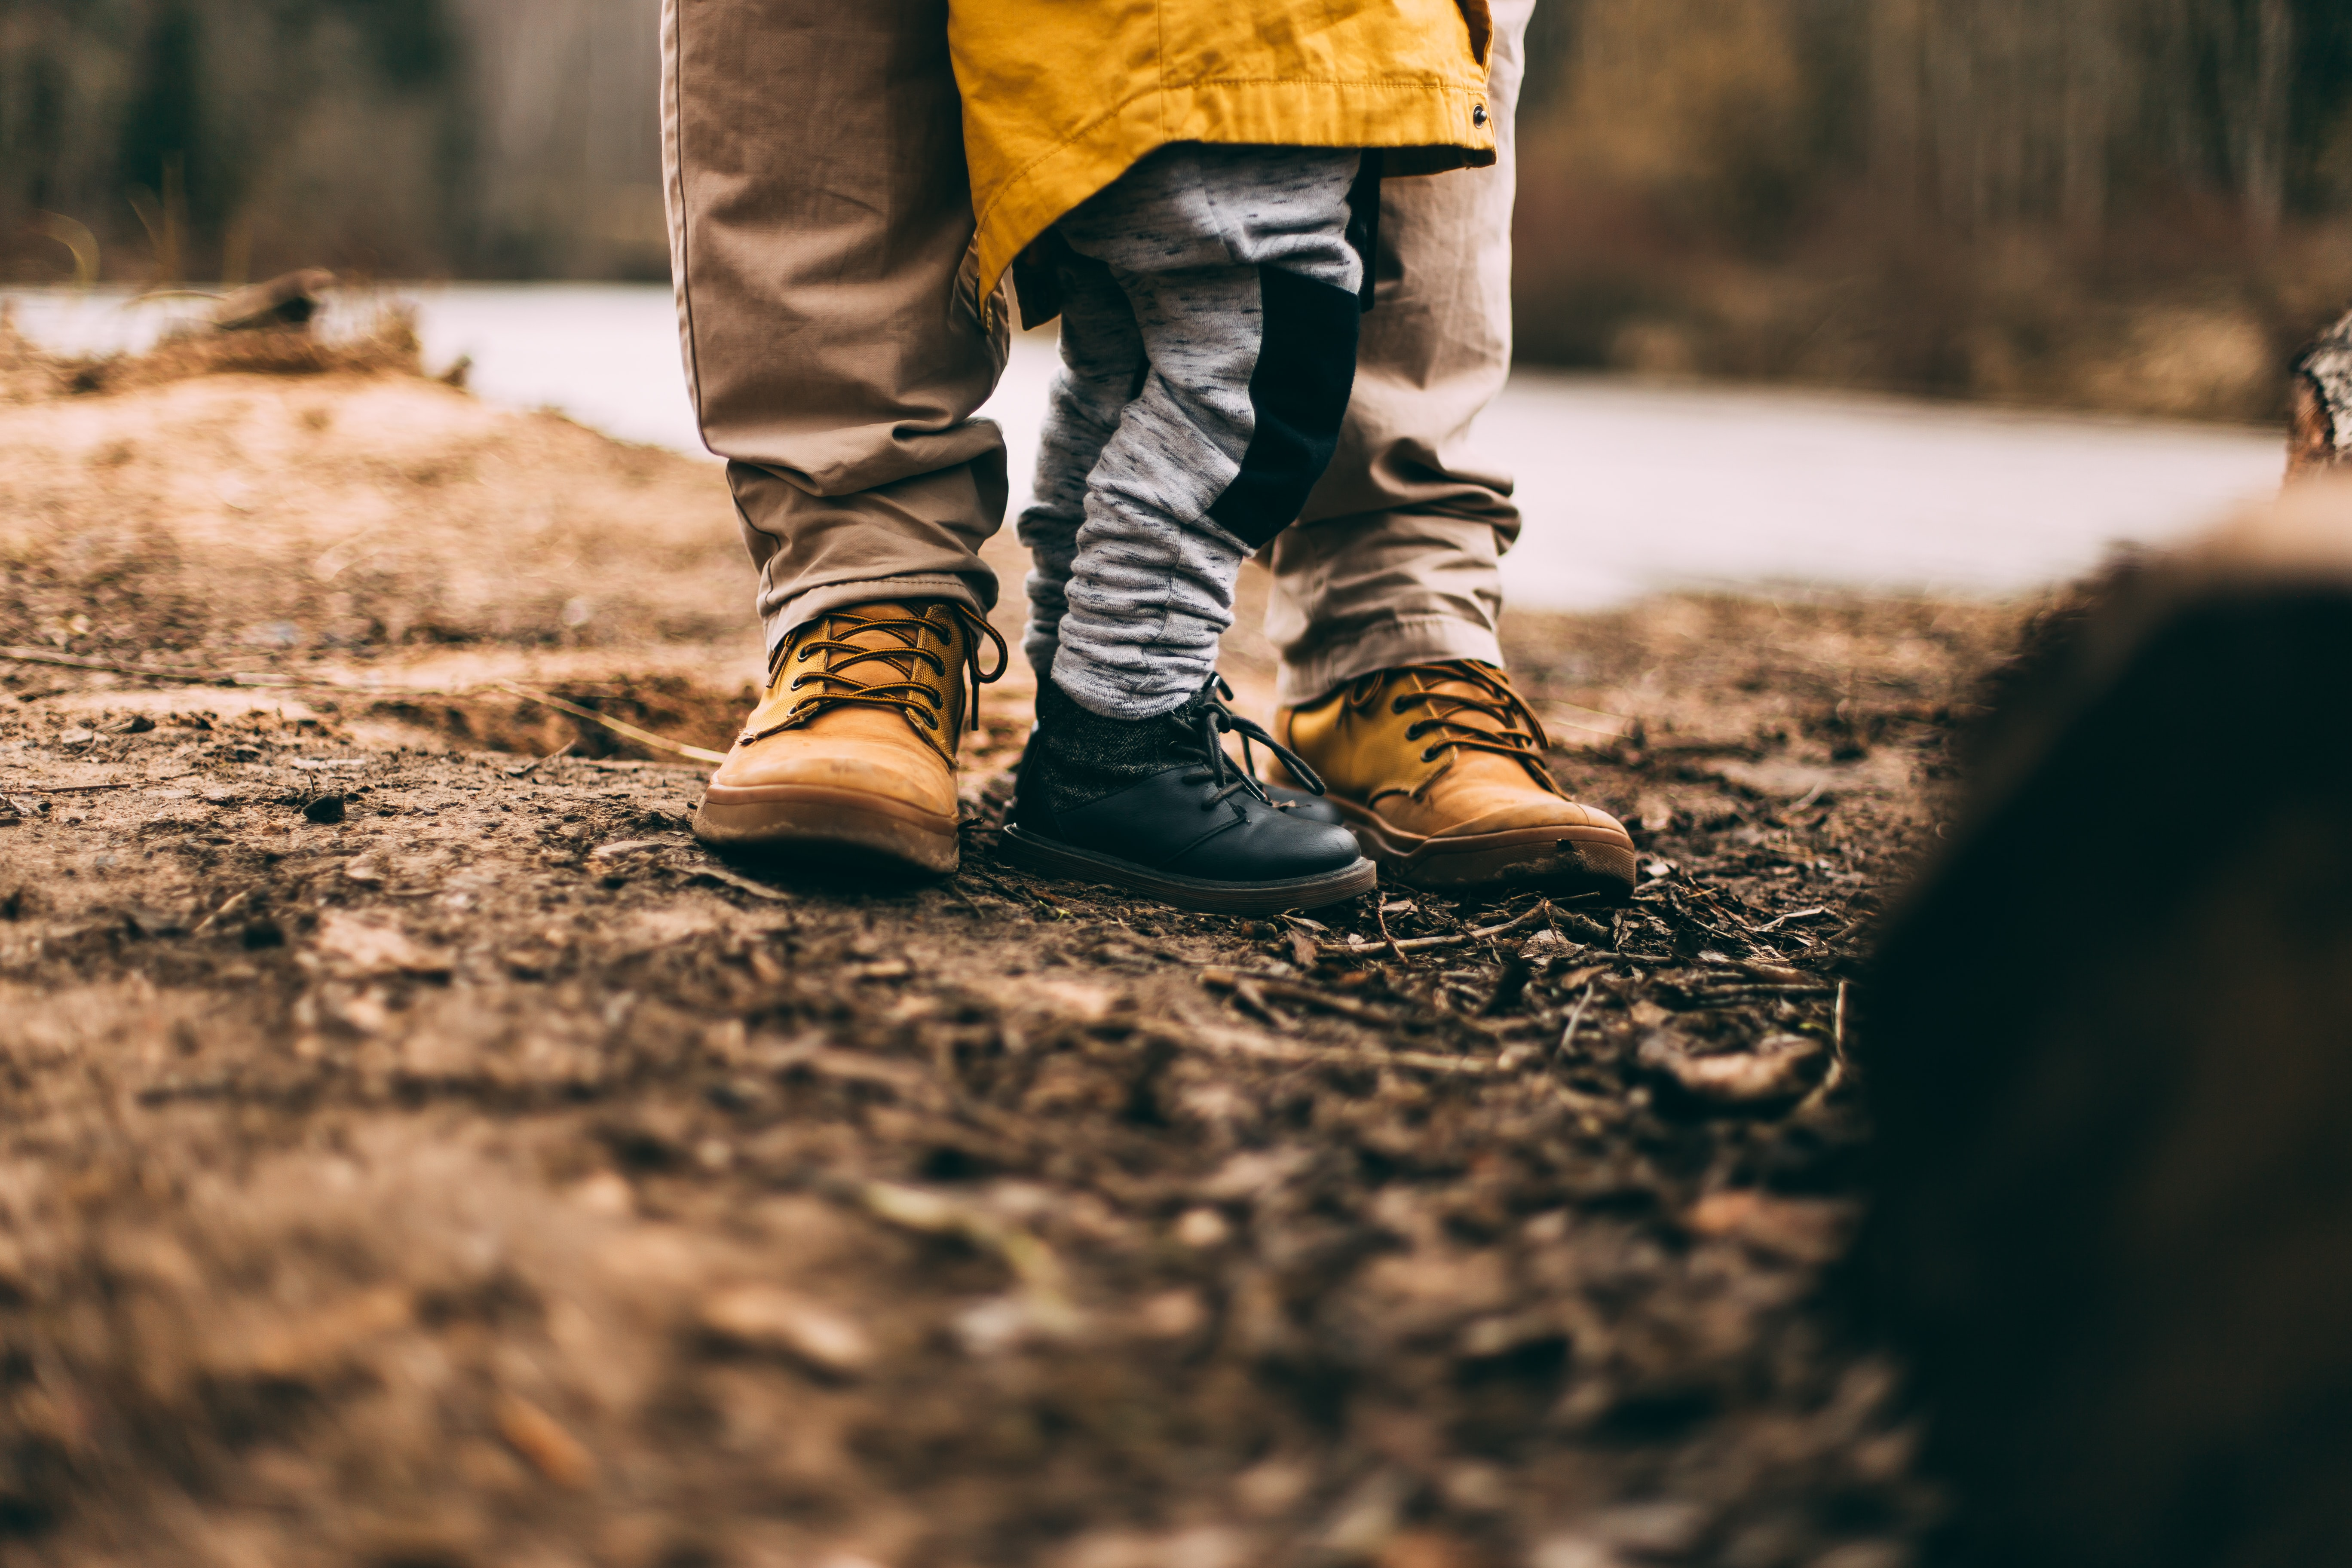 Father's Day 2021: 24 Thoughtful Things to Do For Dad